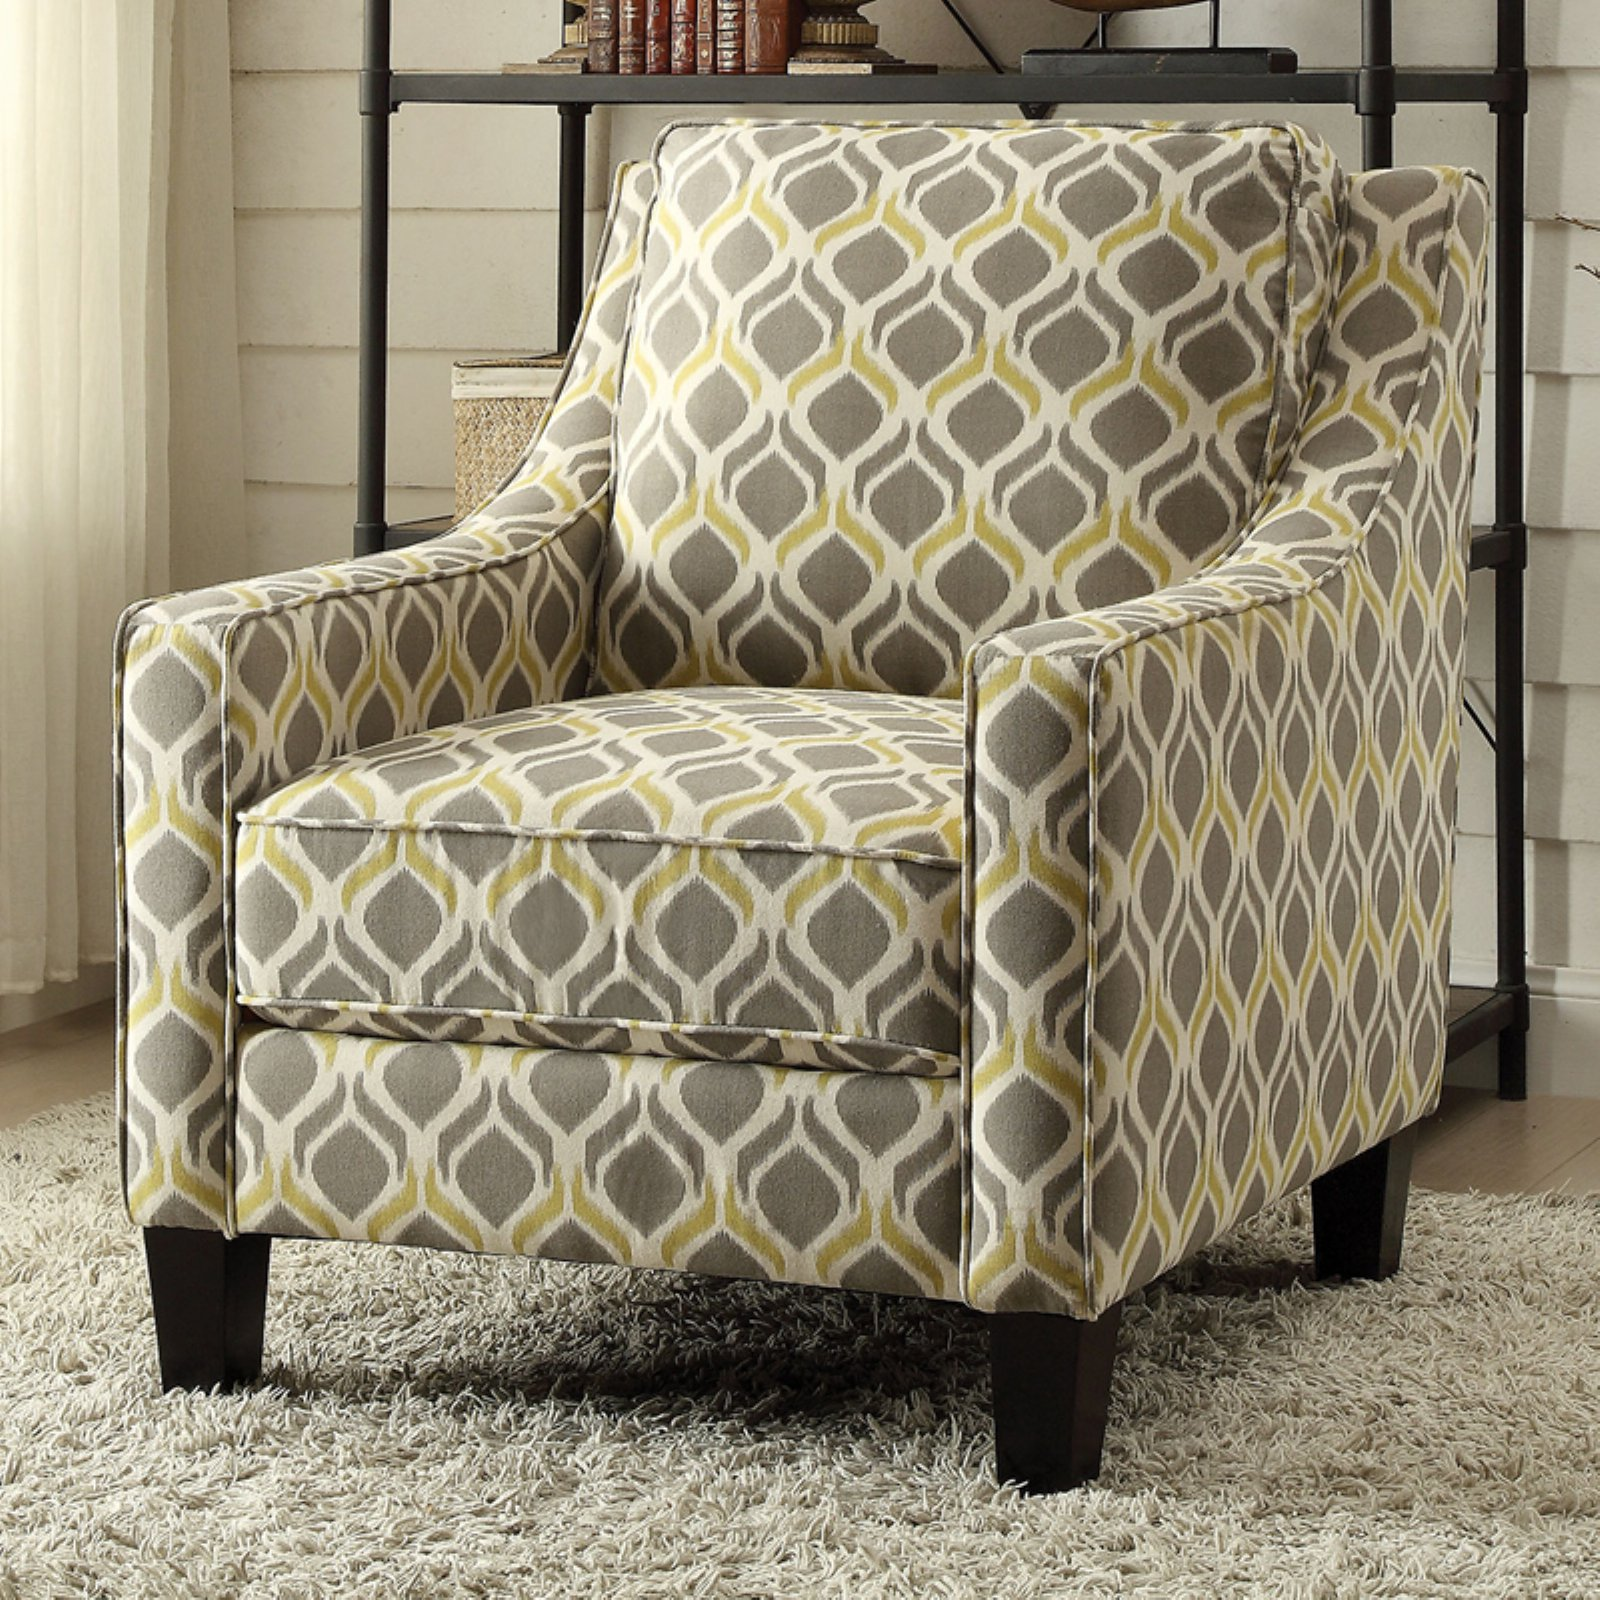 Grey And Yellow Chair Coaster Accent Chair In A Grey And Yellow Stylish Pattern